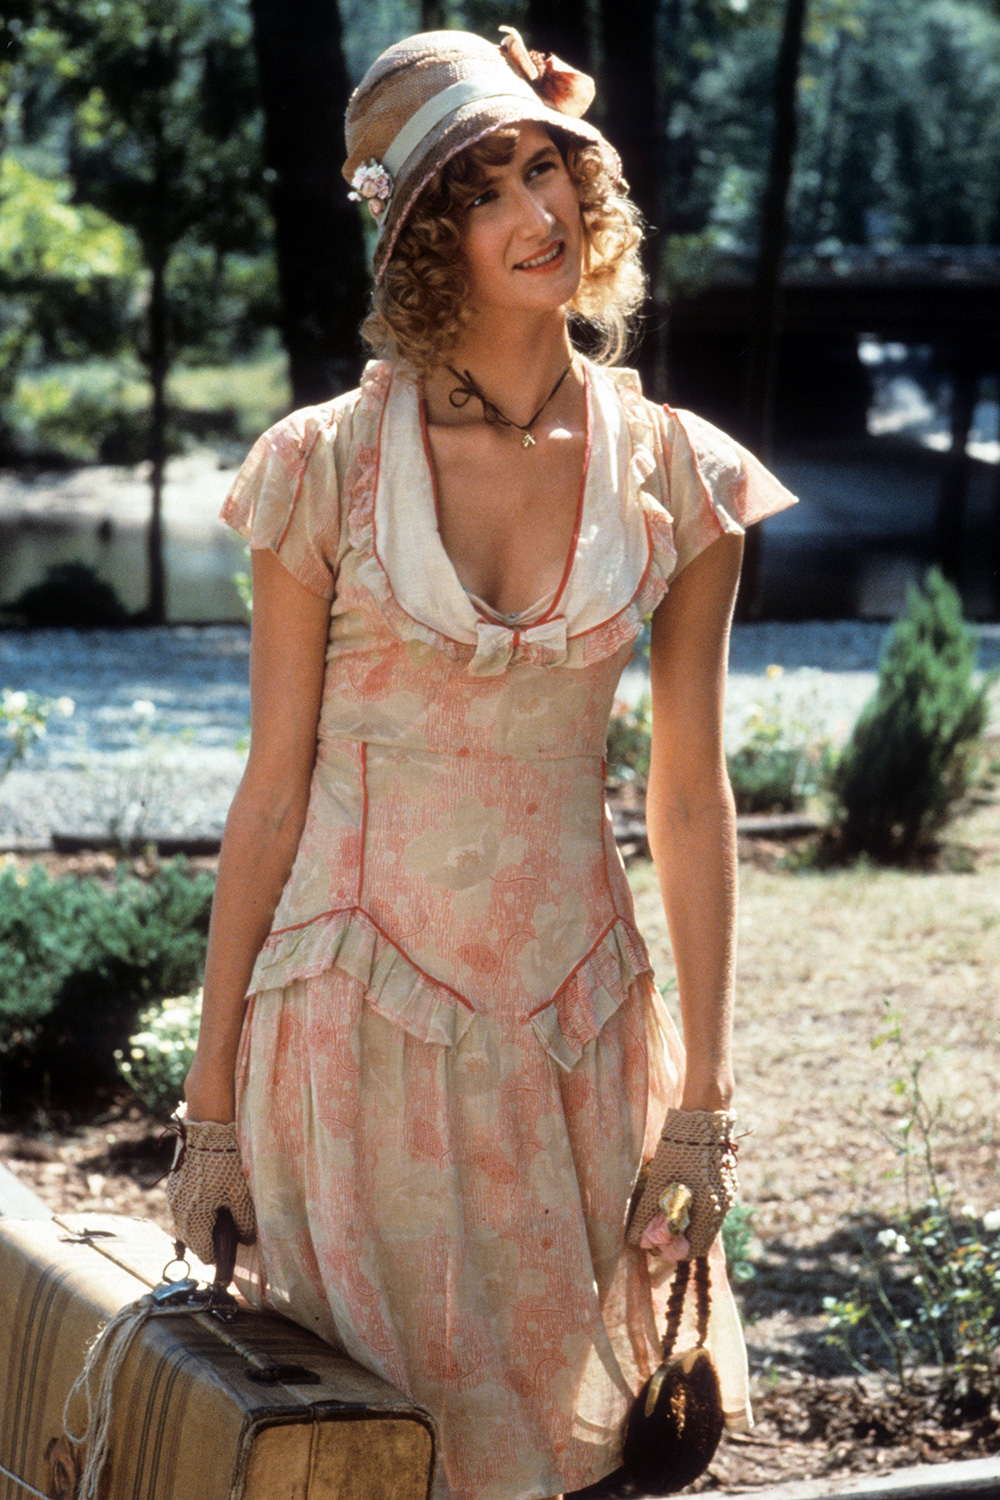 Laura Dern in a scene from the film 'Rambling Rose', 1991